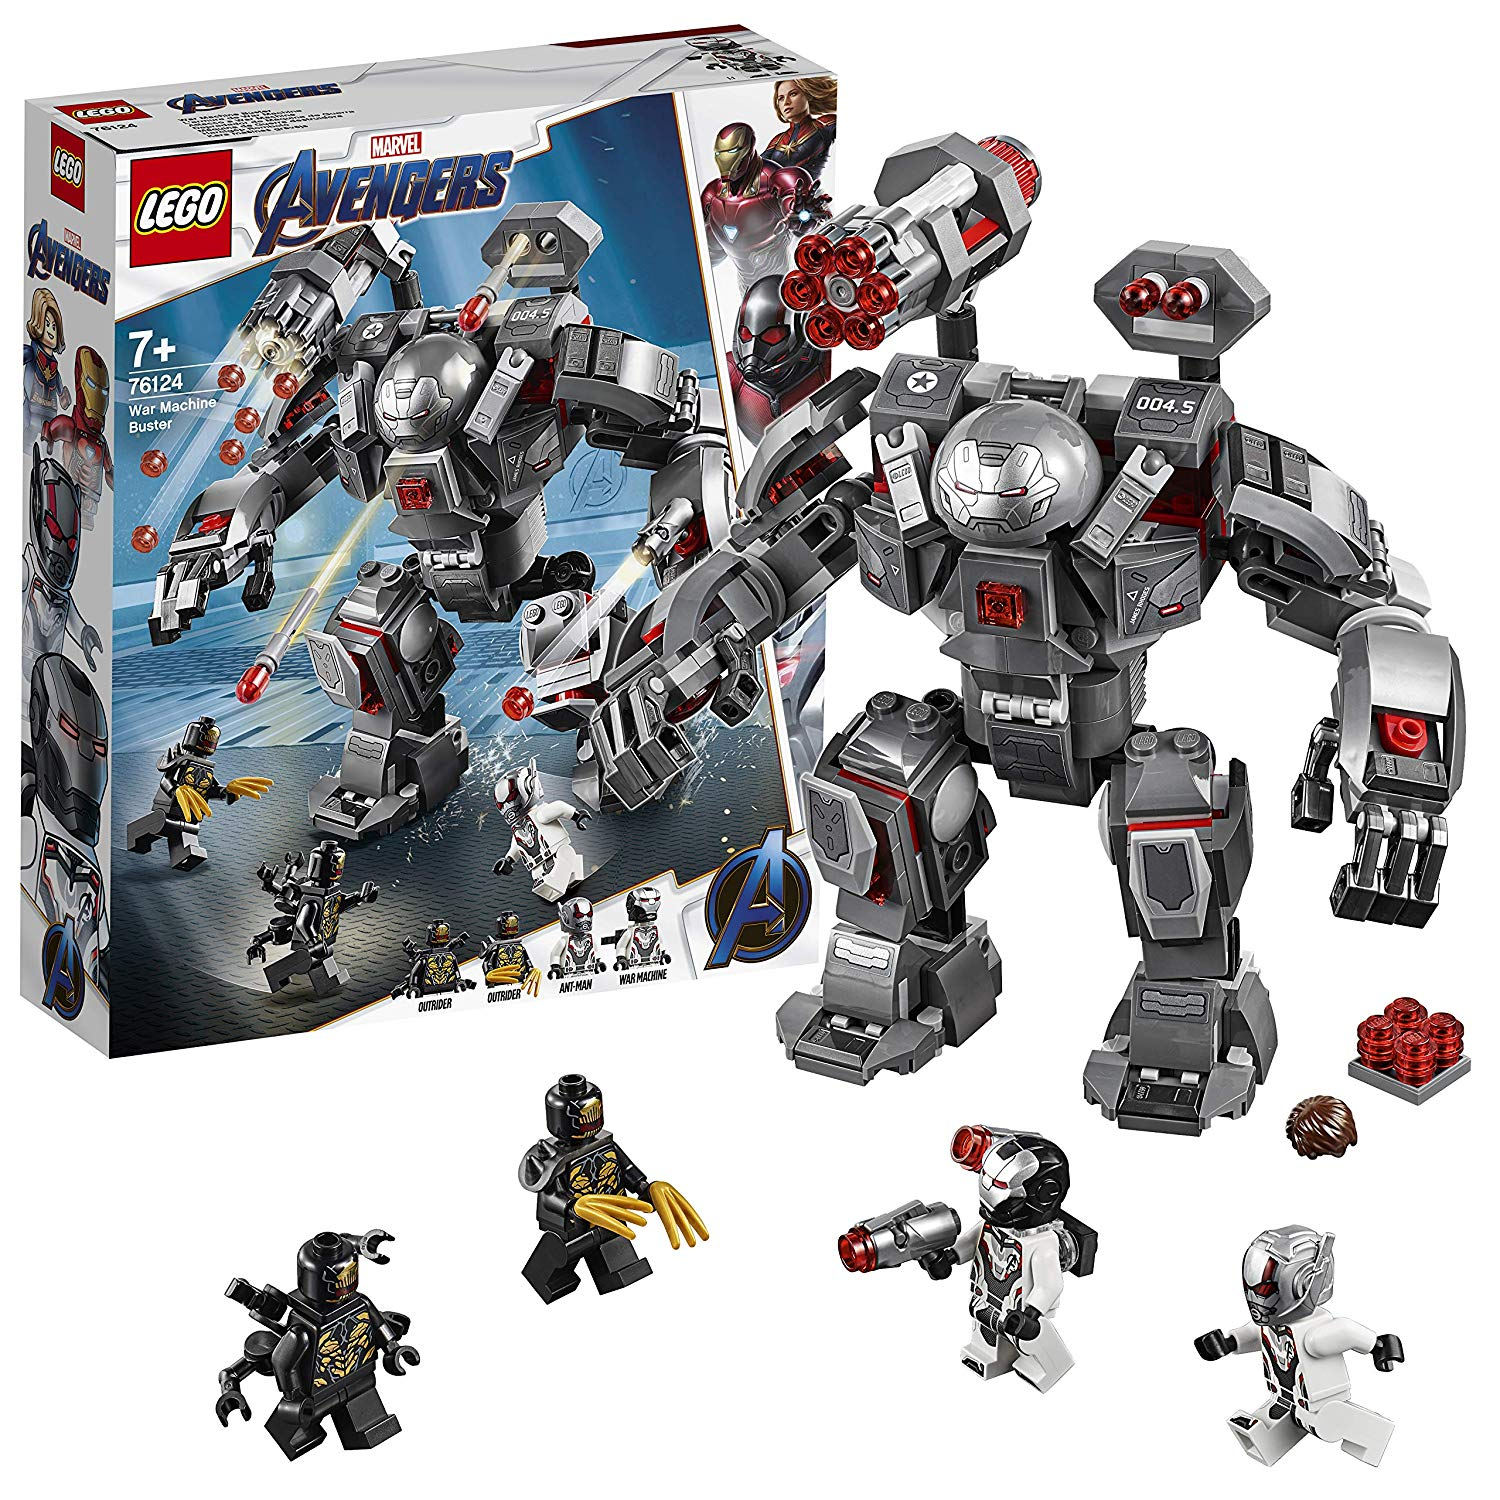 LEGO 76124 Marvel Avengers War Machine Action Figure, Ant-Man Minifigure, Super Heroes Playset, Colourful